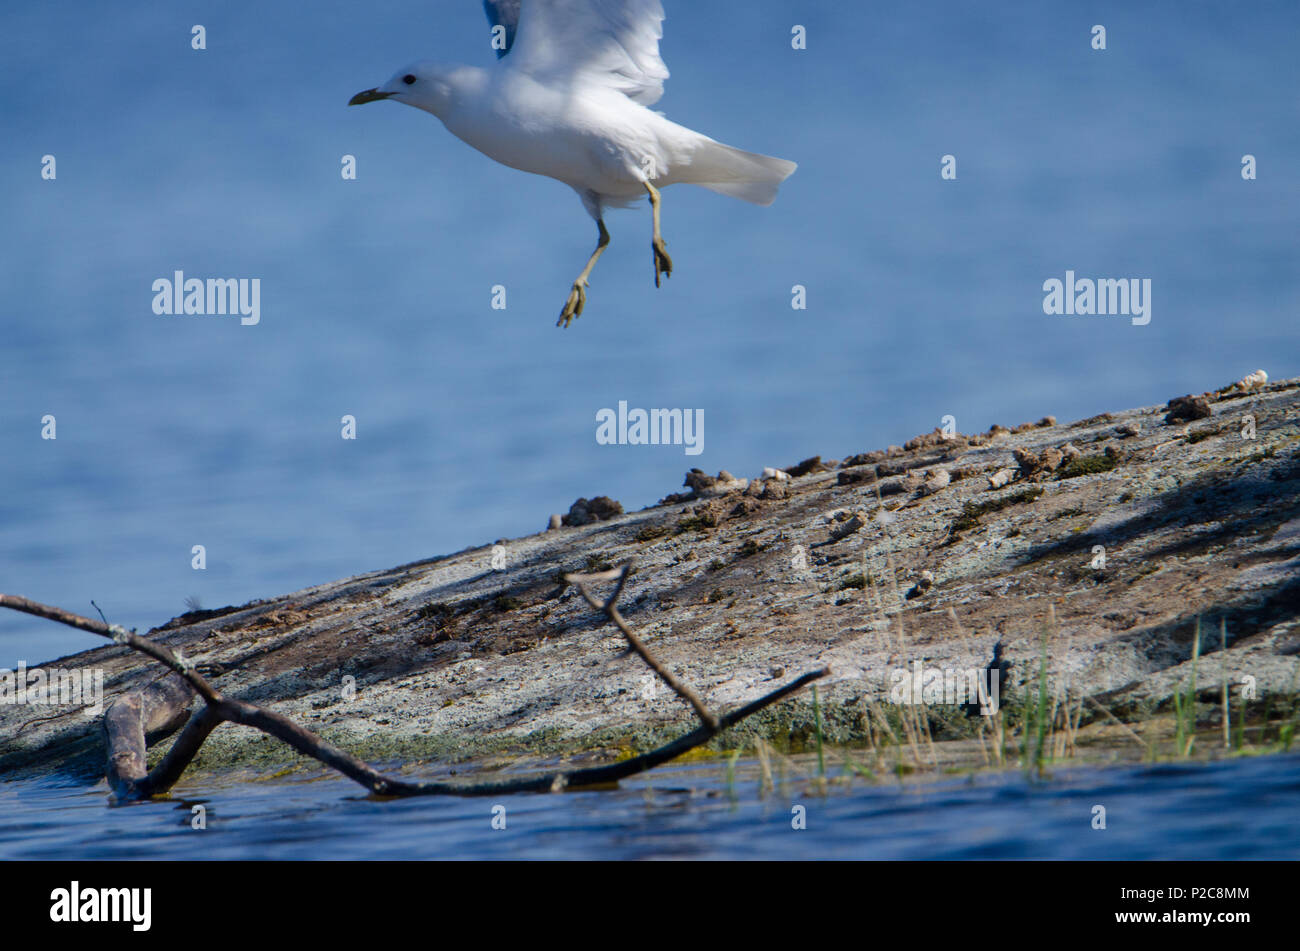 Larus canus (Up into Heavens). Lake Kukkia, Luopioinen, Finland. 25.5.2018 - Stock Image